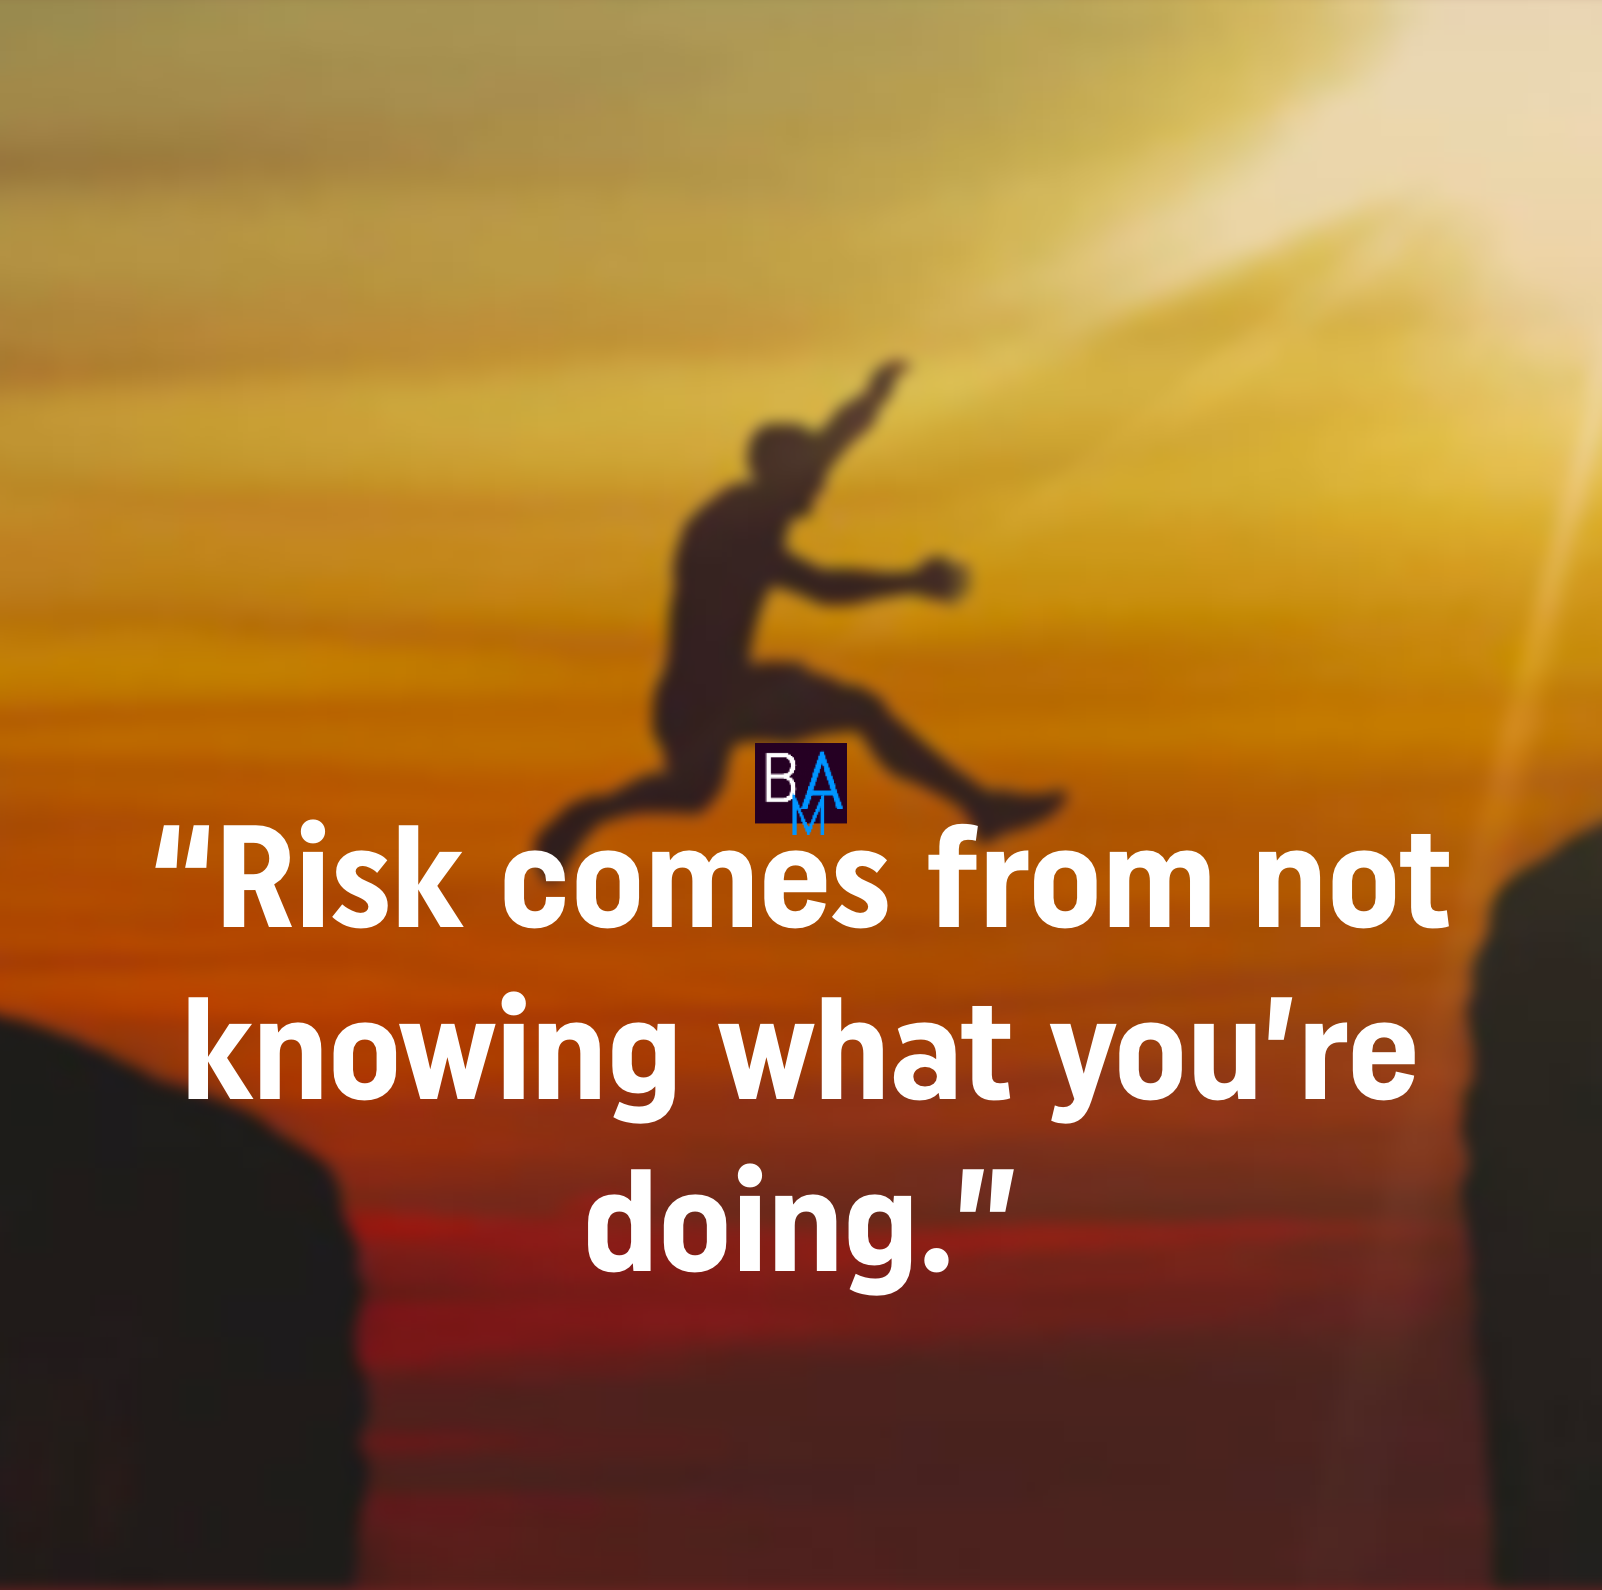 increase your risk taking abilities